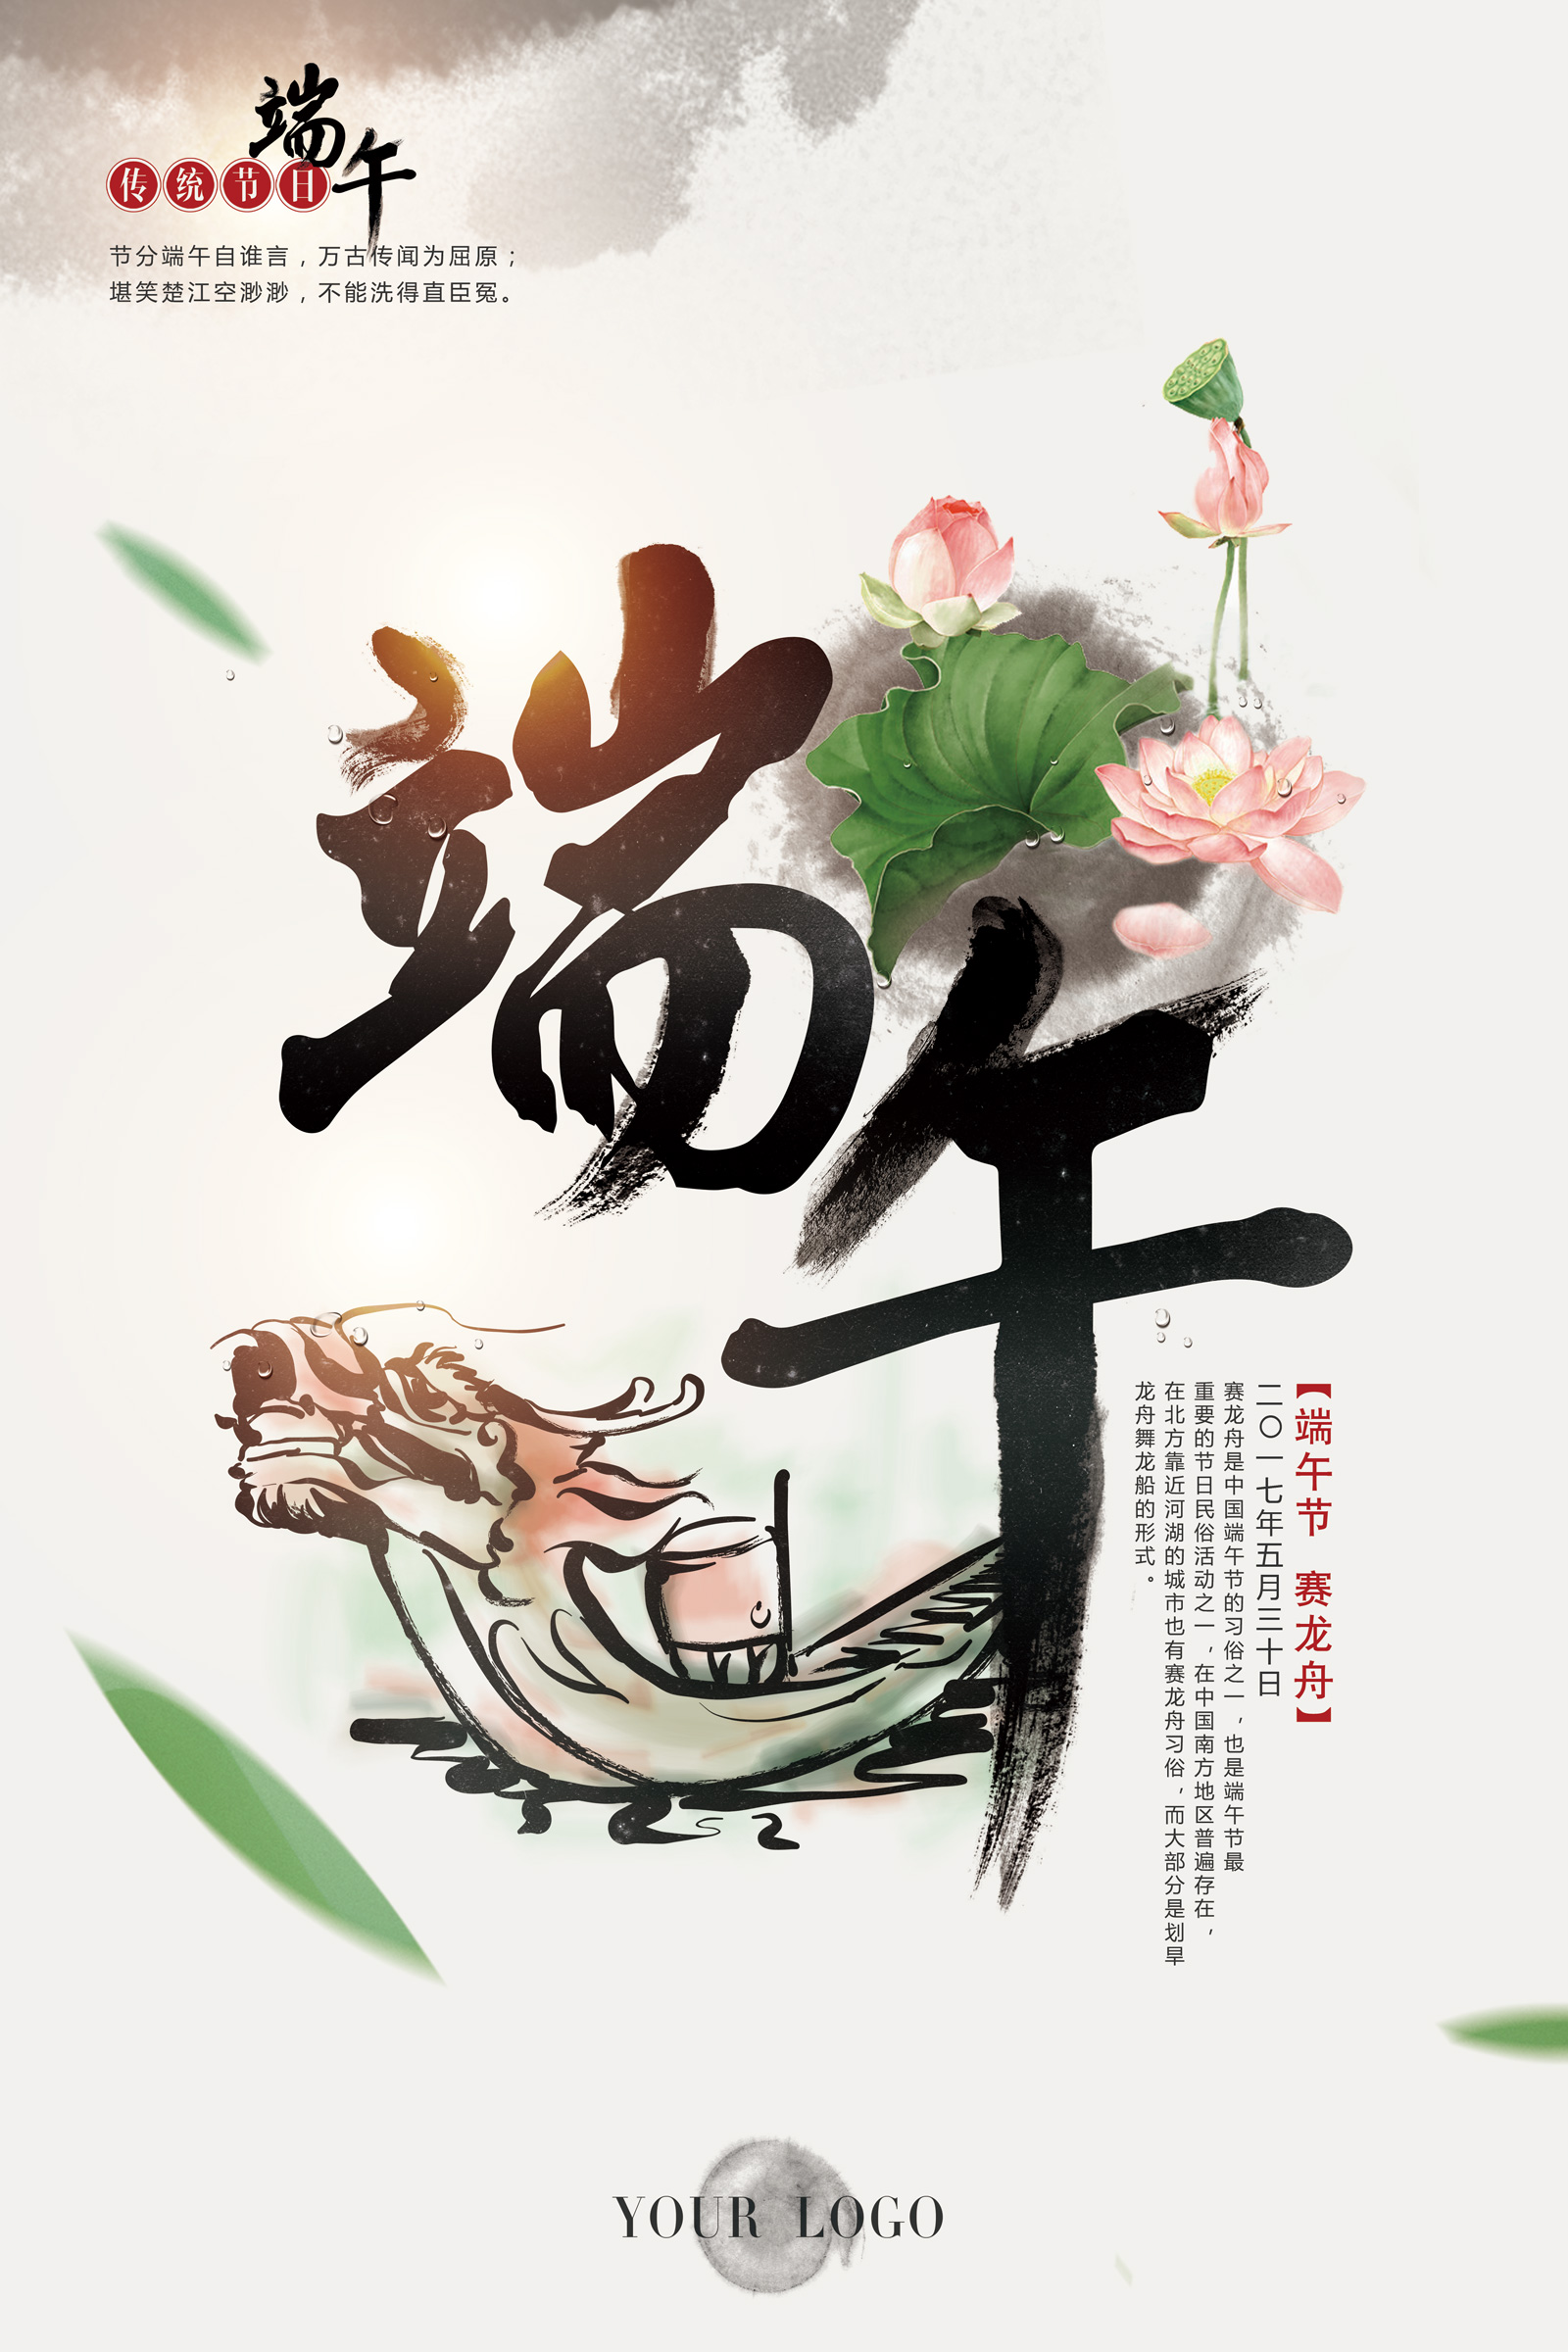 chinesefontdesign.com 2017 05 10 21 30 18 Dragon Boat Festival Chinese style poster PSD material Wind Chinese festival dragon boat posters the Dragon Boat Festival dumplings the Dragon Boat Festival Dragon Boat Festival is a big promotion the Dragon Boat Festival Dragon Boat Festival activity diagrams the Dragon Boat Festival dragon boat Chinese wind poster PSD material for free download The Dragon Boat Festival posters pile head lotus ink painting gate house dragon boat racing Dragon Boat Festival promotion big dragon